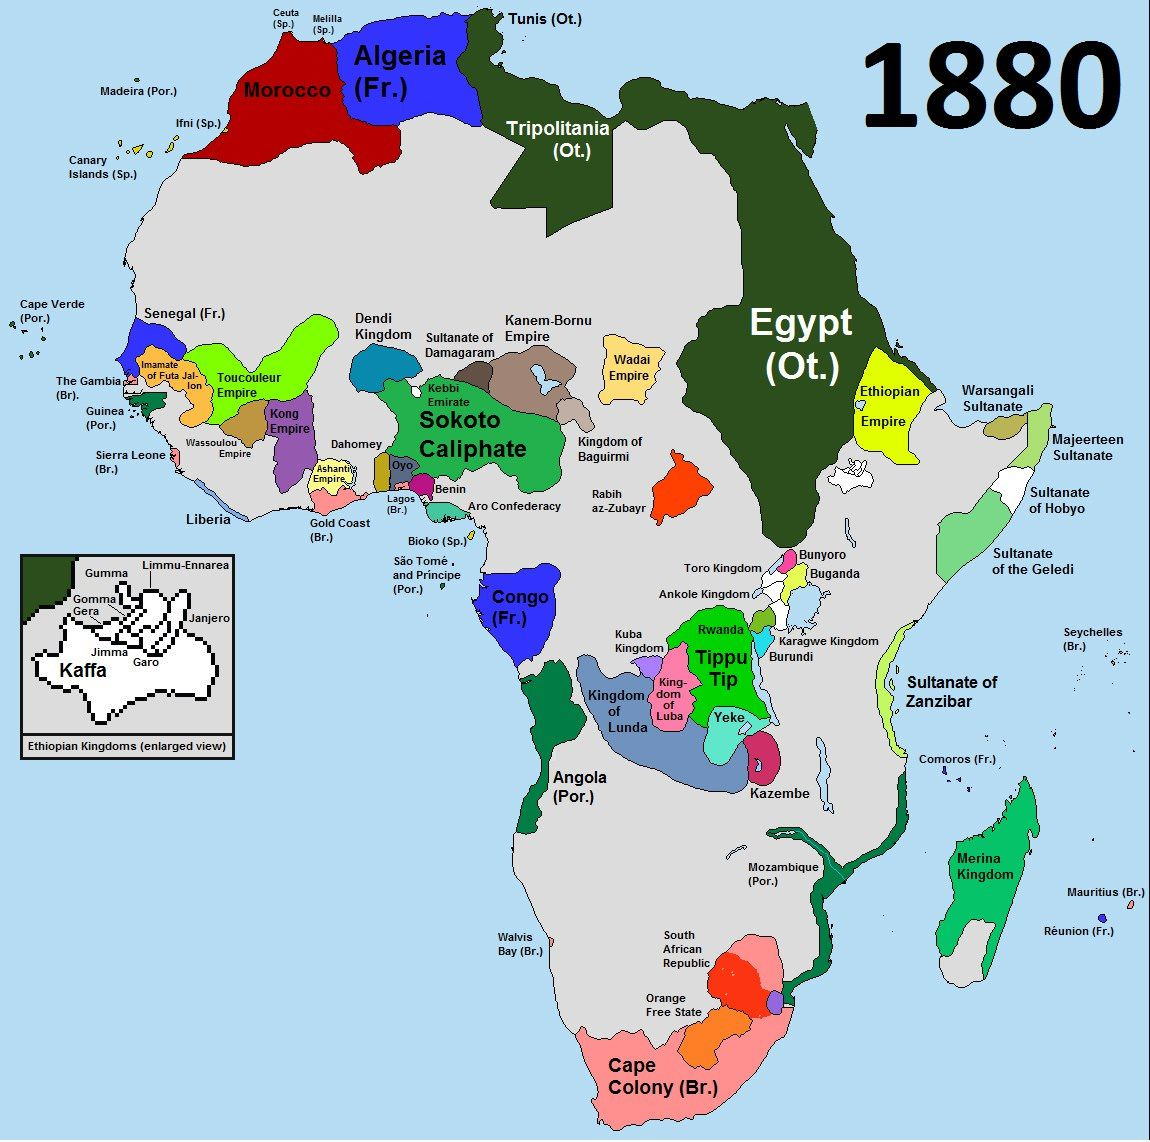 map of Africa before colonization